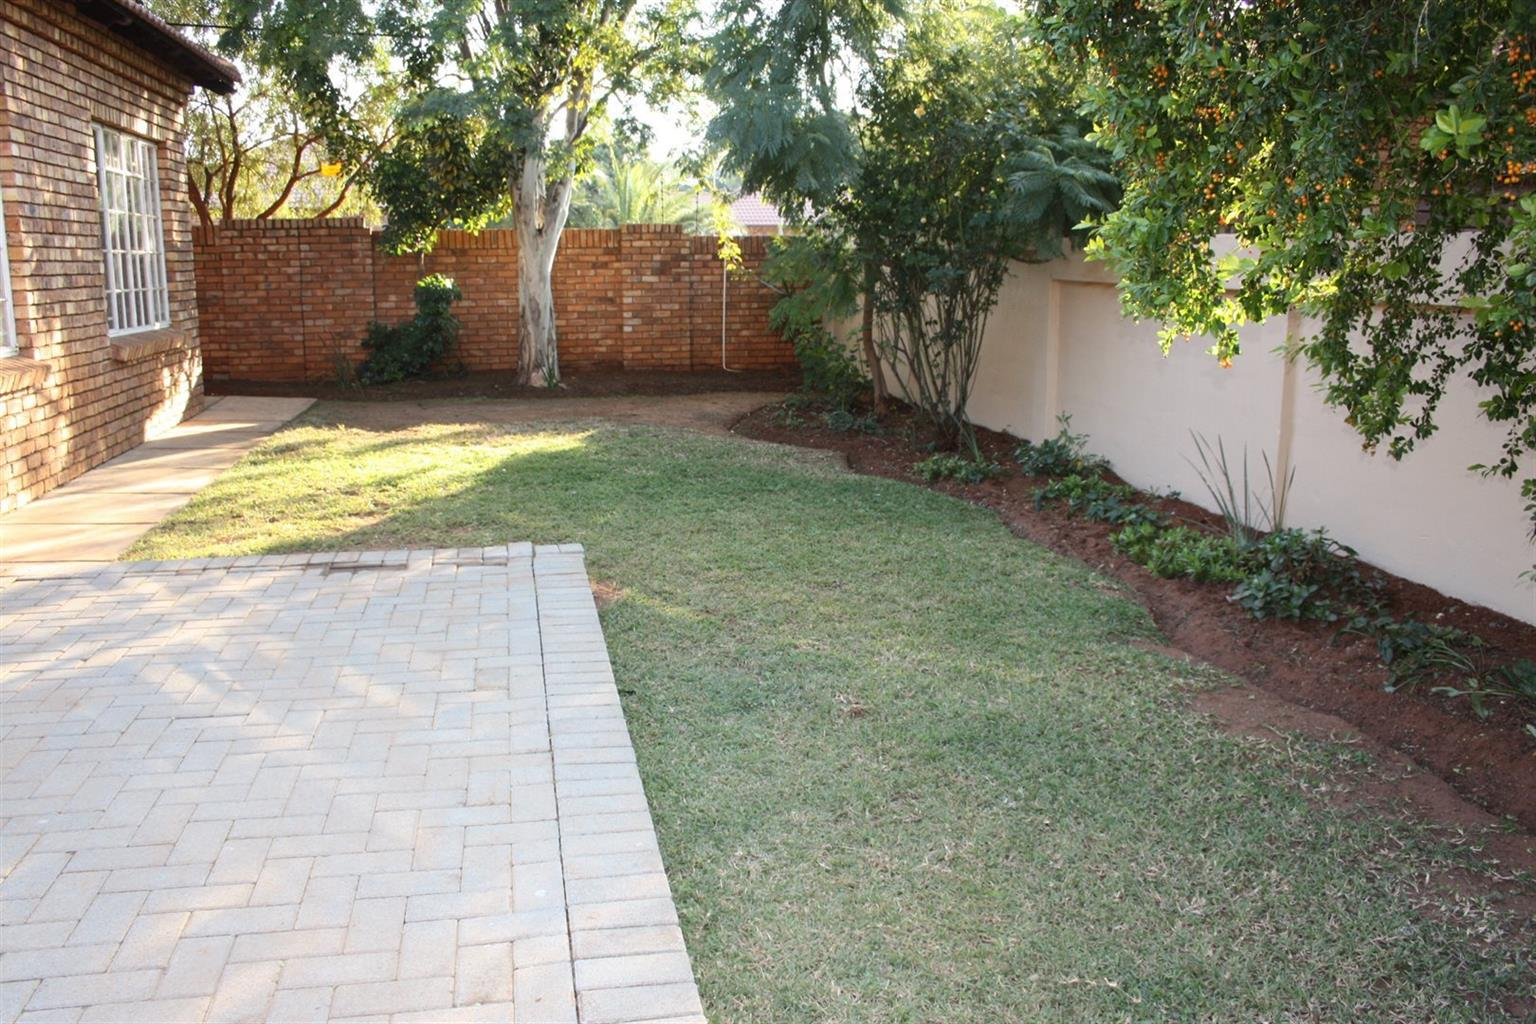 2 BEDROOM HOUSE FOR SALE IN THERESAPARK